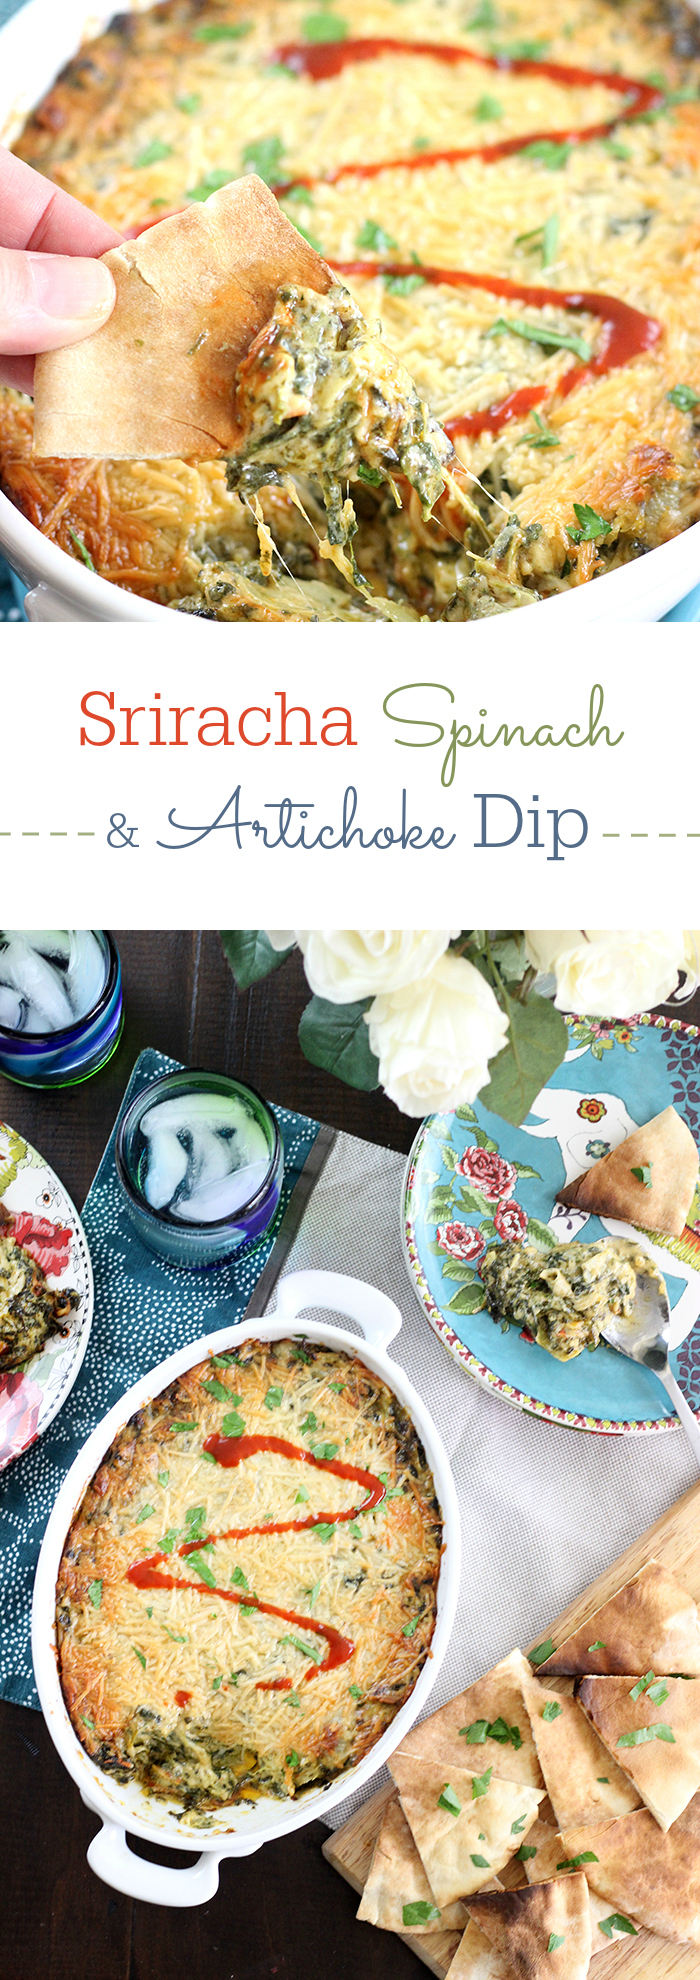 Creamy Spinach and Artichoke Dip with Parmesan Crust from your oven! Add bacon or sriracha for your own unique twist on this classic favorite.